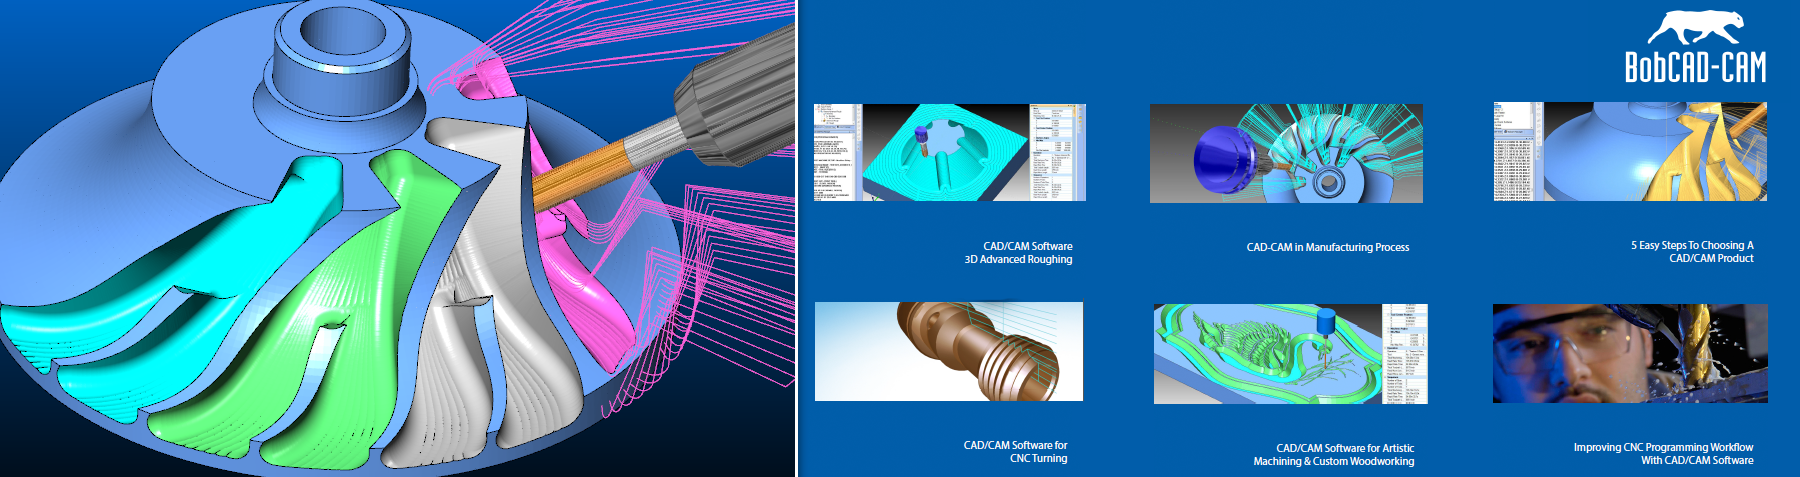 Cad cam research papers